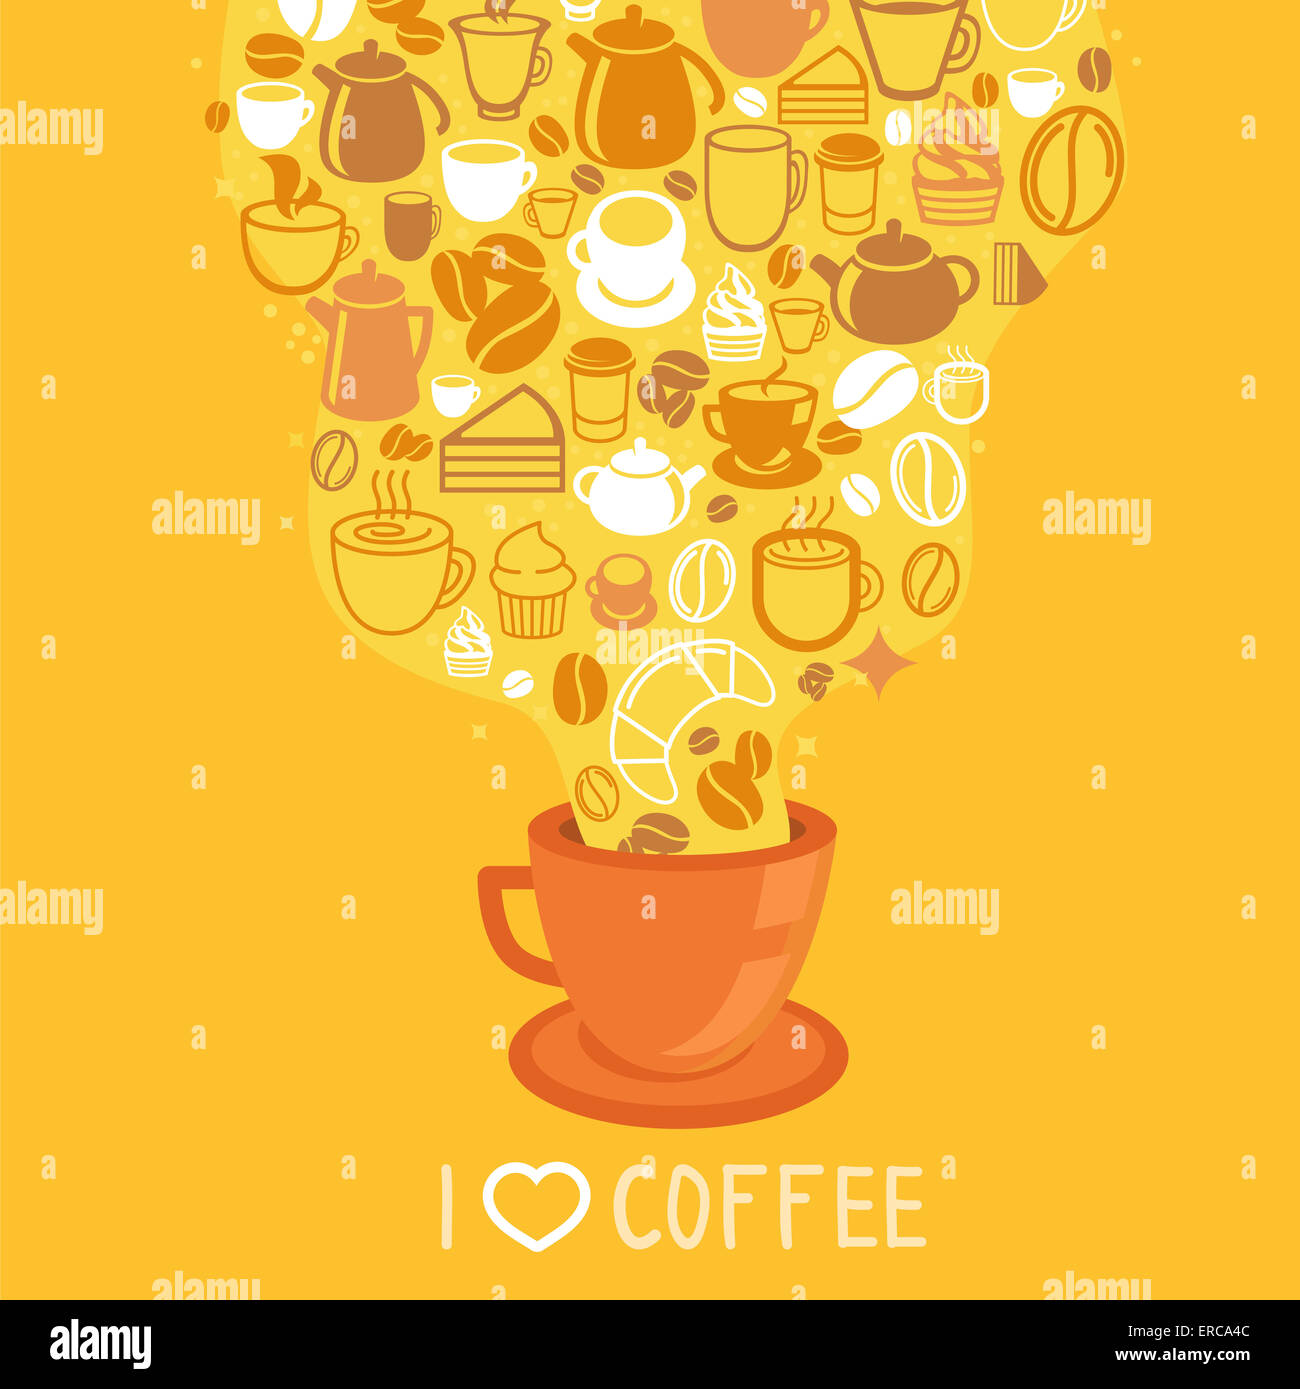 Coffee poster - illustration in flat style with hot cup of coffee on yellow background - Stock Image